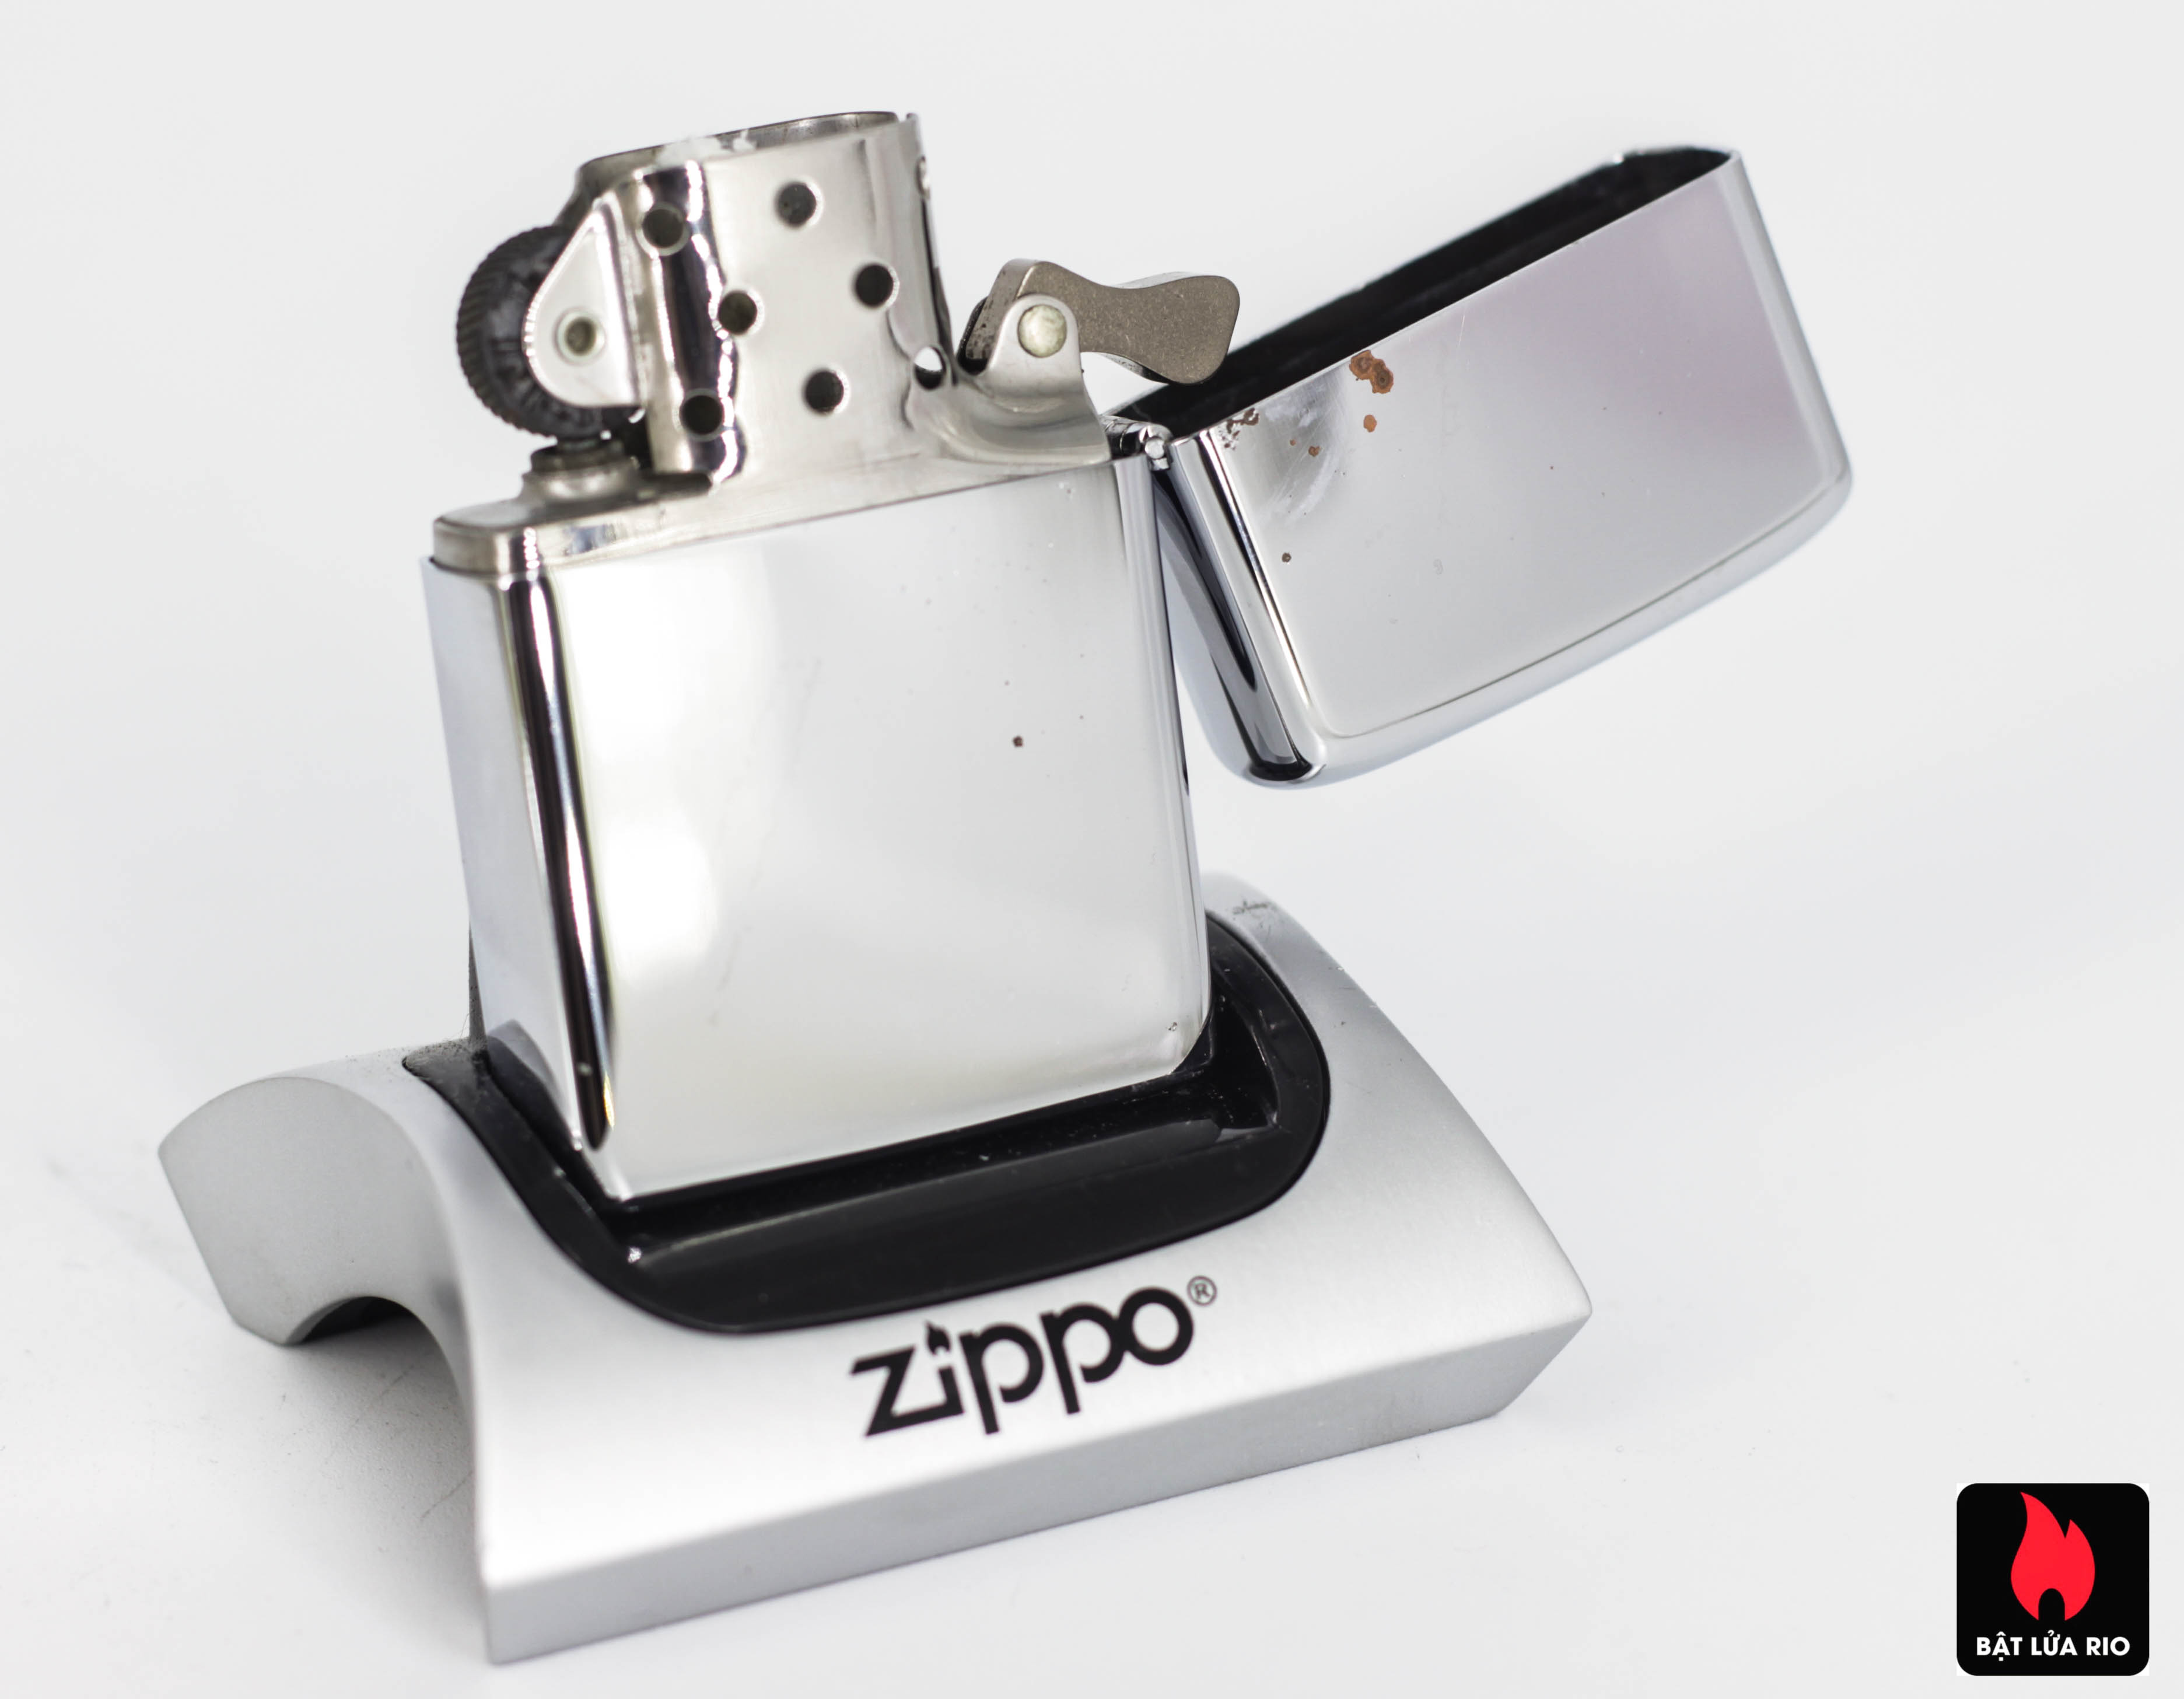 ZIPPO XƯA 1971 – PRESENTED BY COMMANDANT US MARINE CORPS